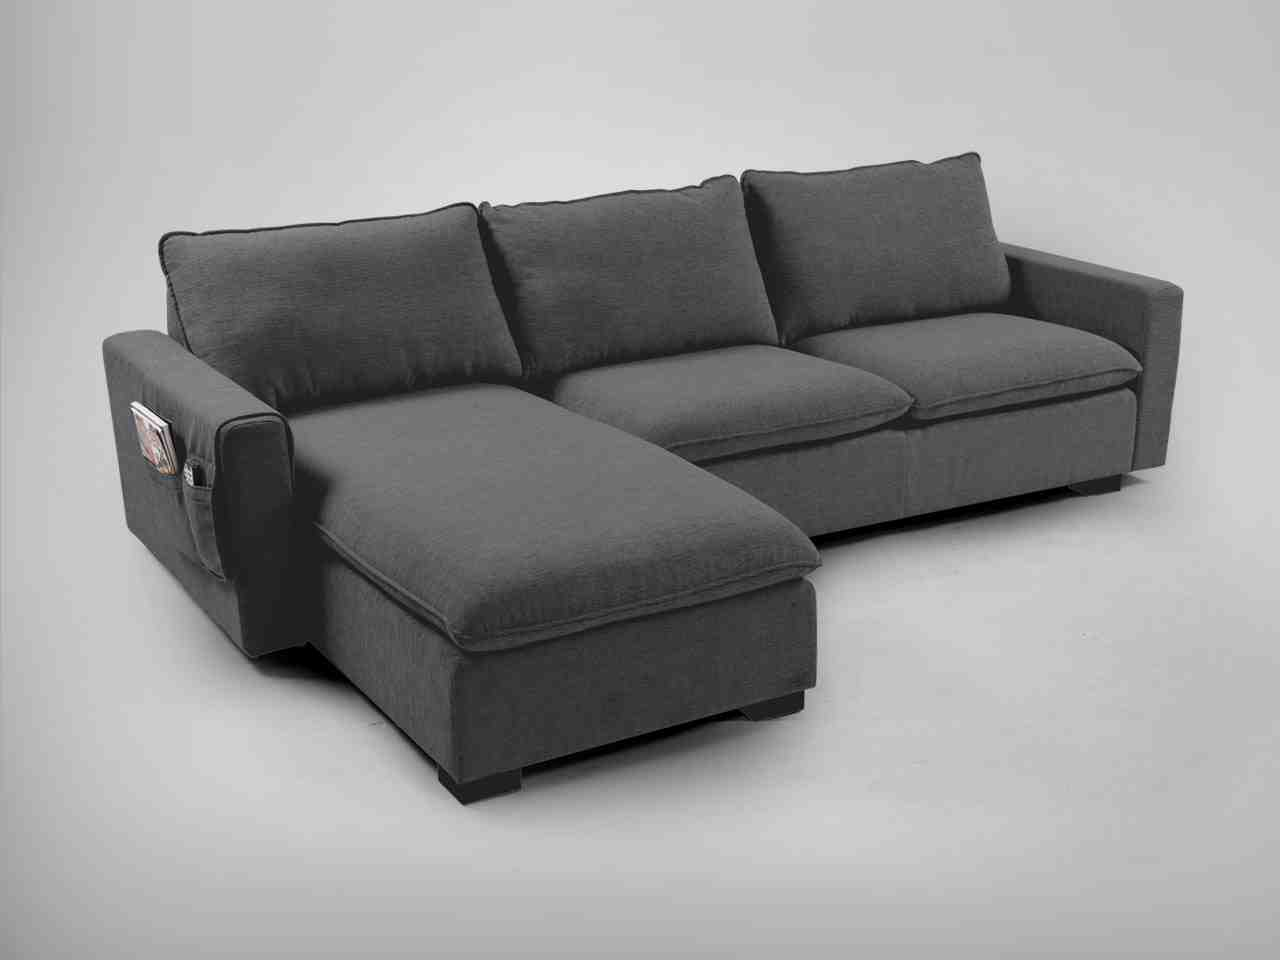 Surprising Living Room Sectional Sofa